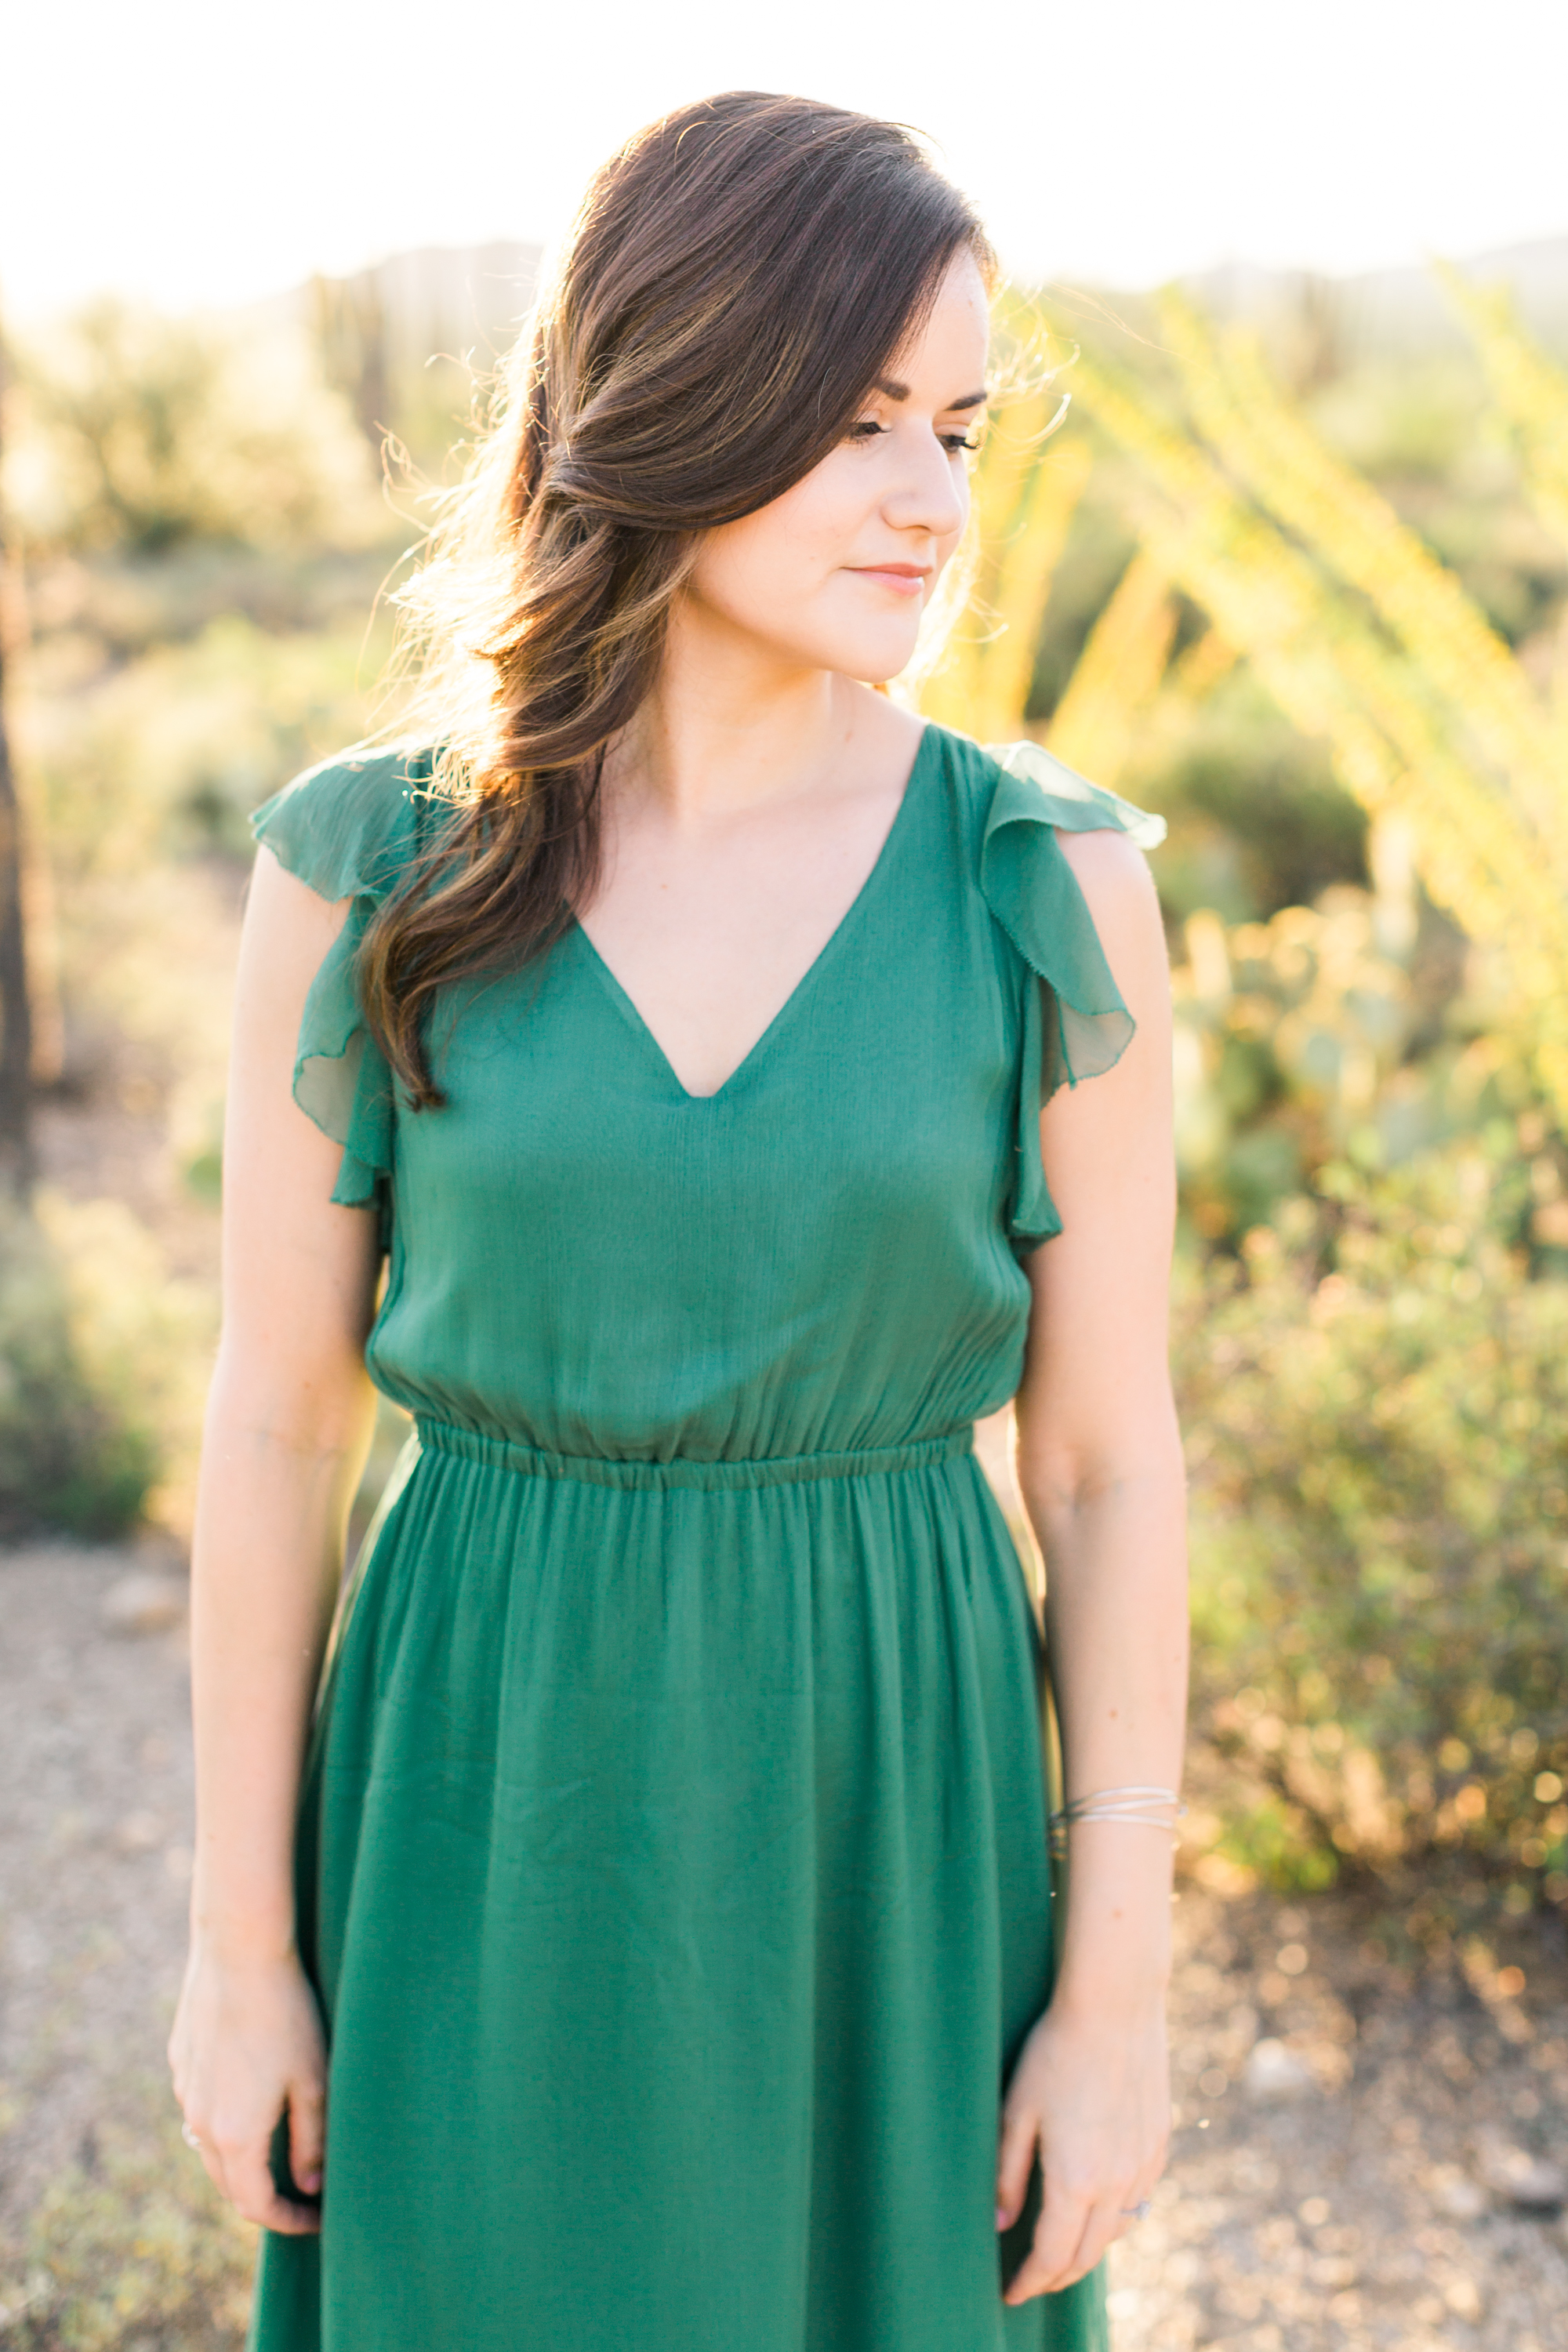 Beautiful girl in gorgeous green dress with the desert in the background.